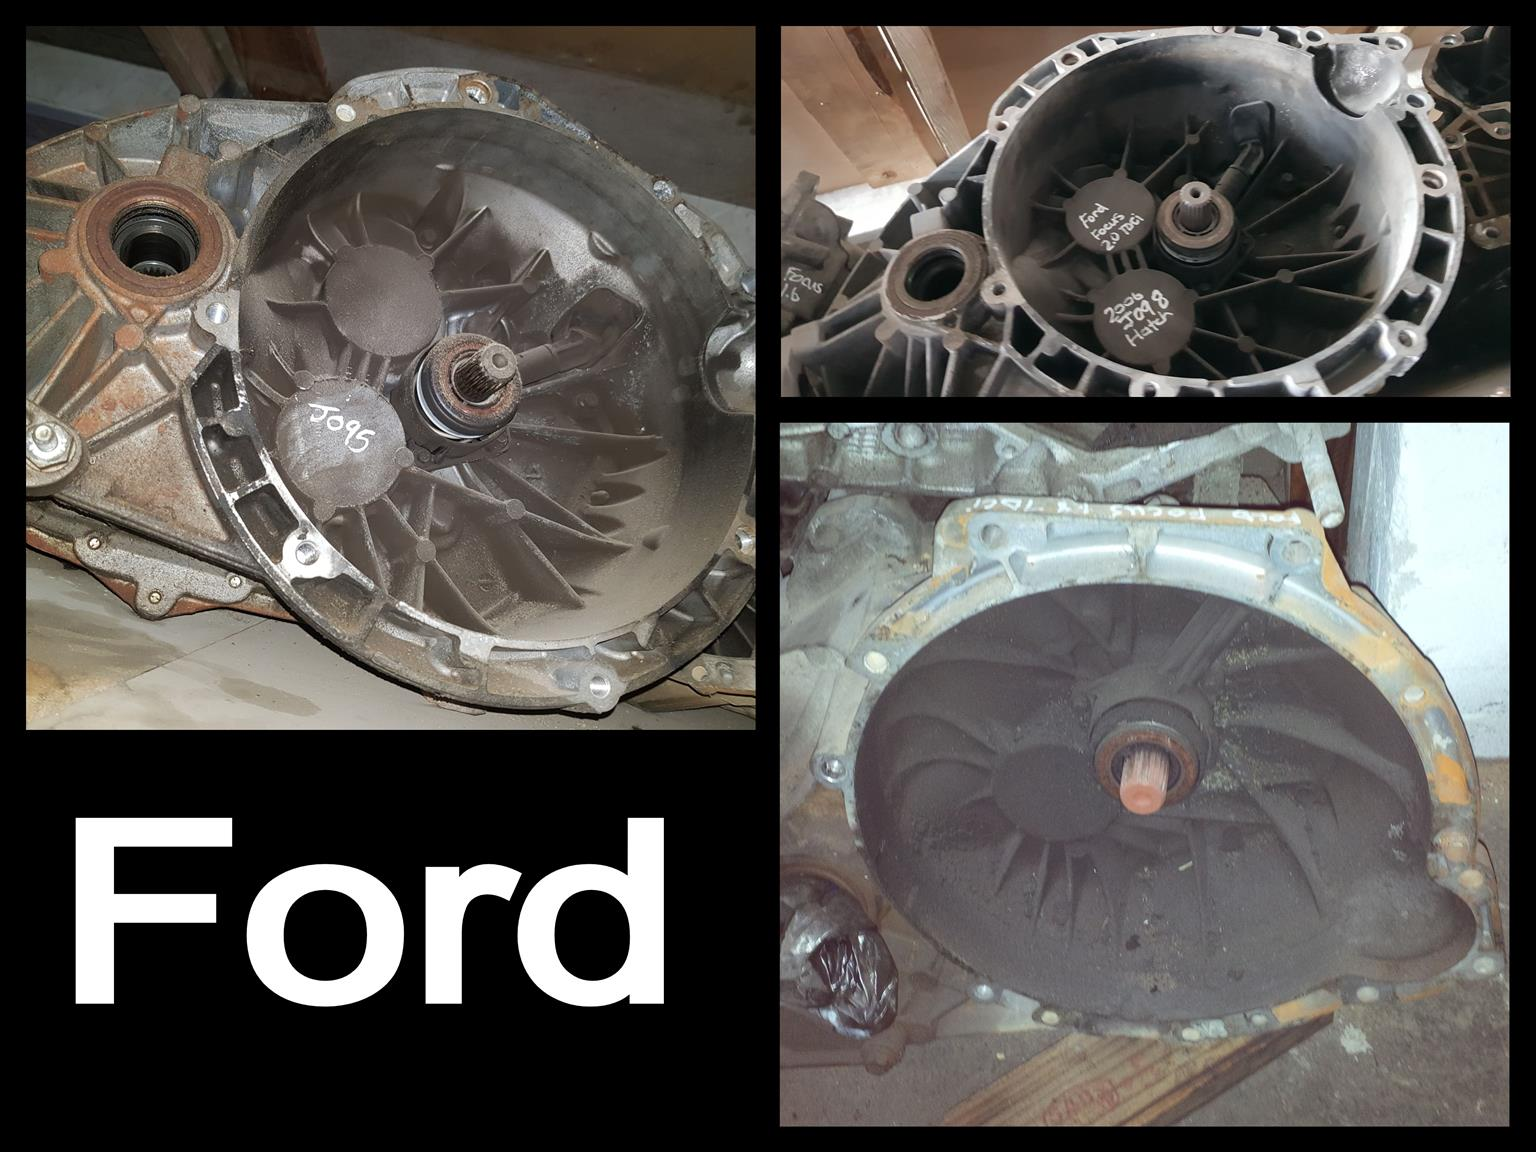 Ford gearboxes for sale for most make and models.